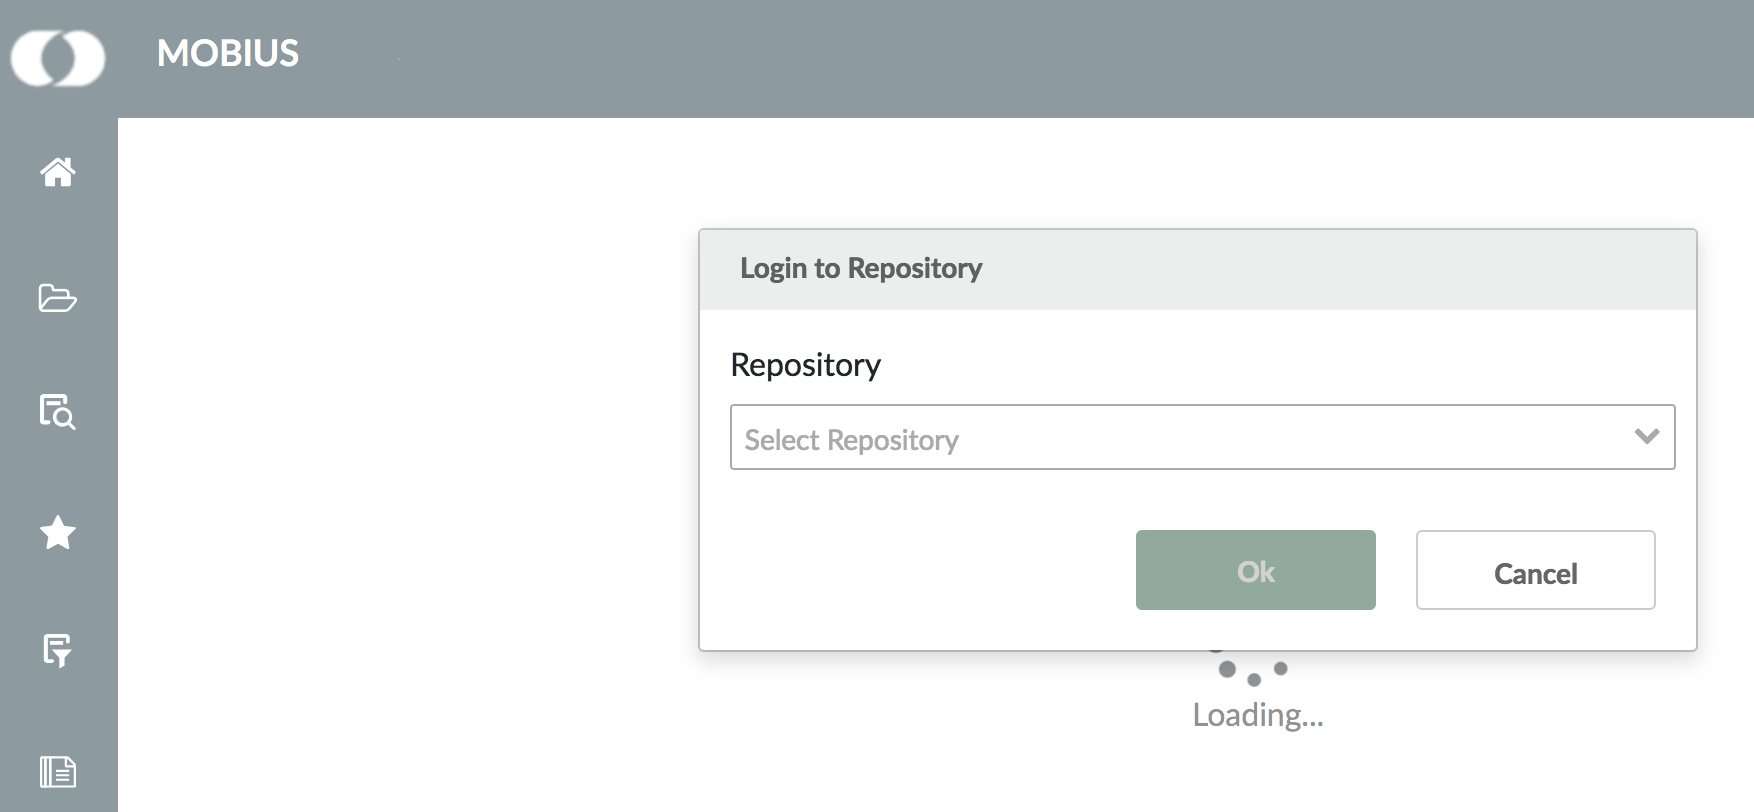 Select Repository